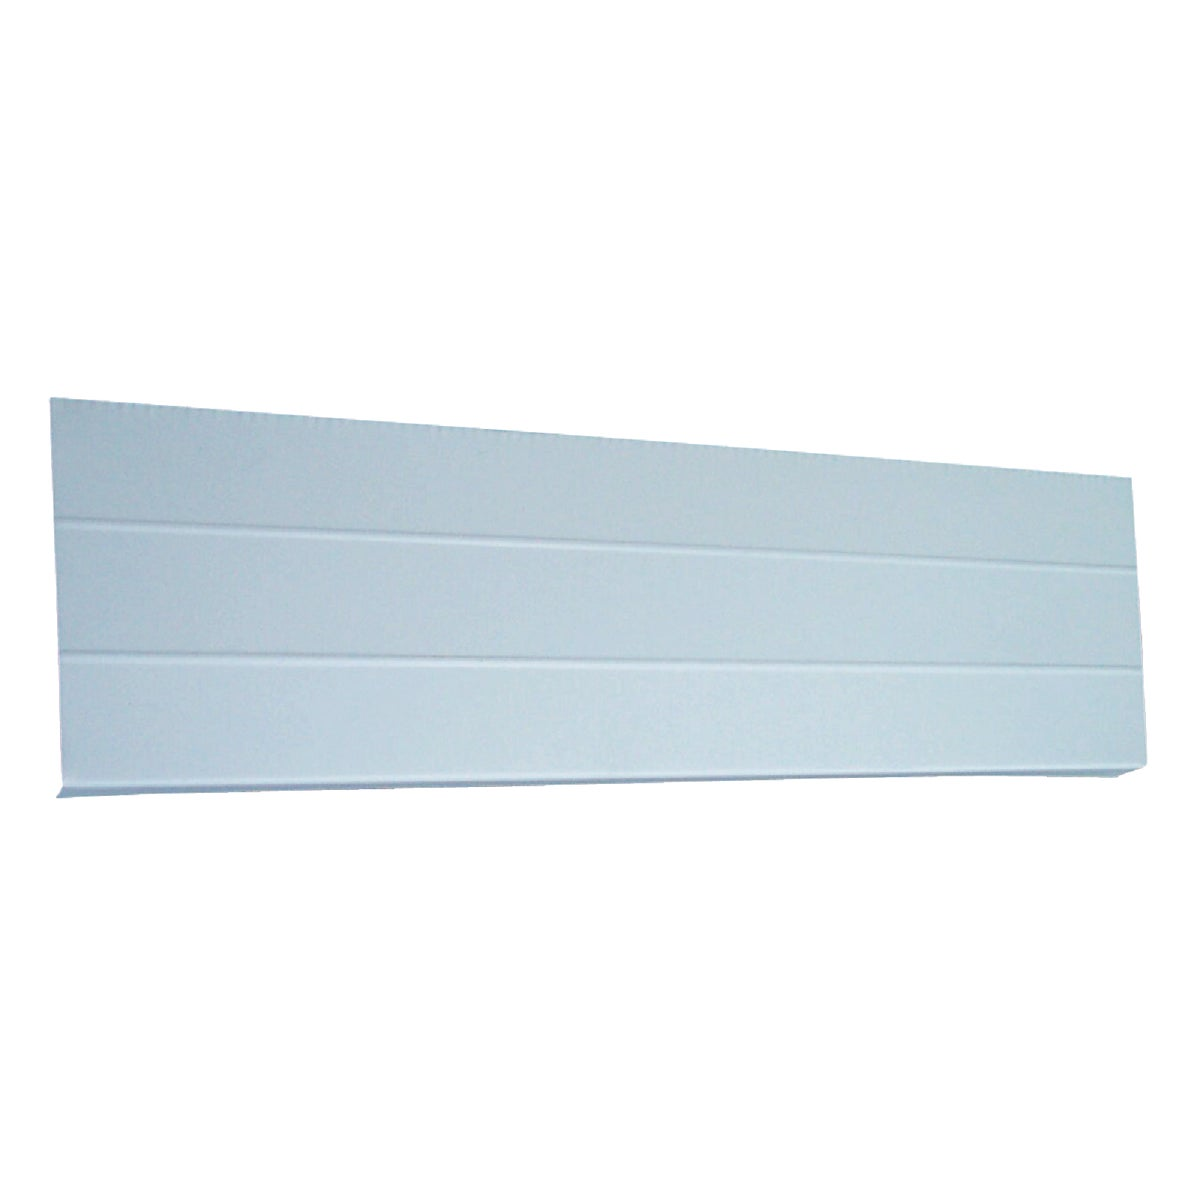 "6"" WHT SM RB ALUM FASCIA - 48490-AJ22 by Klauer Mfg Co"